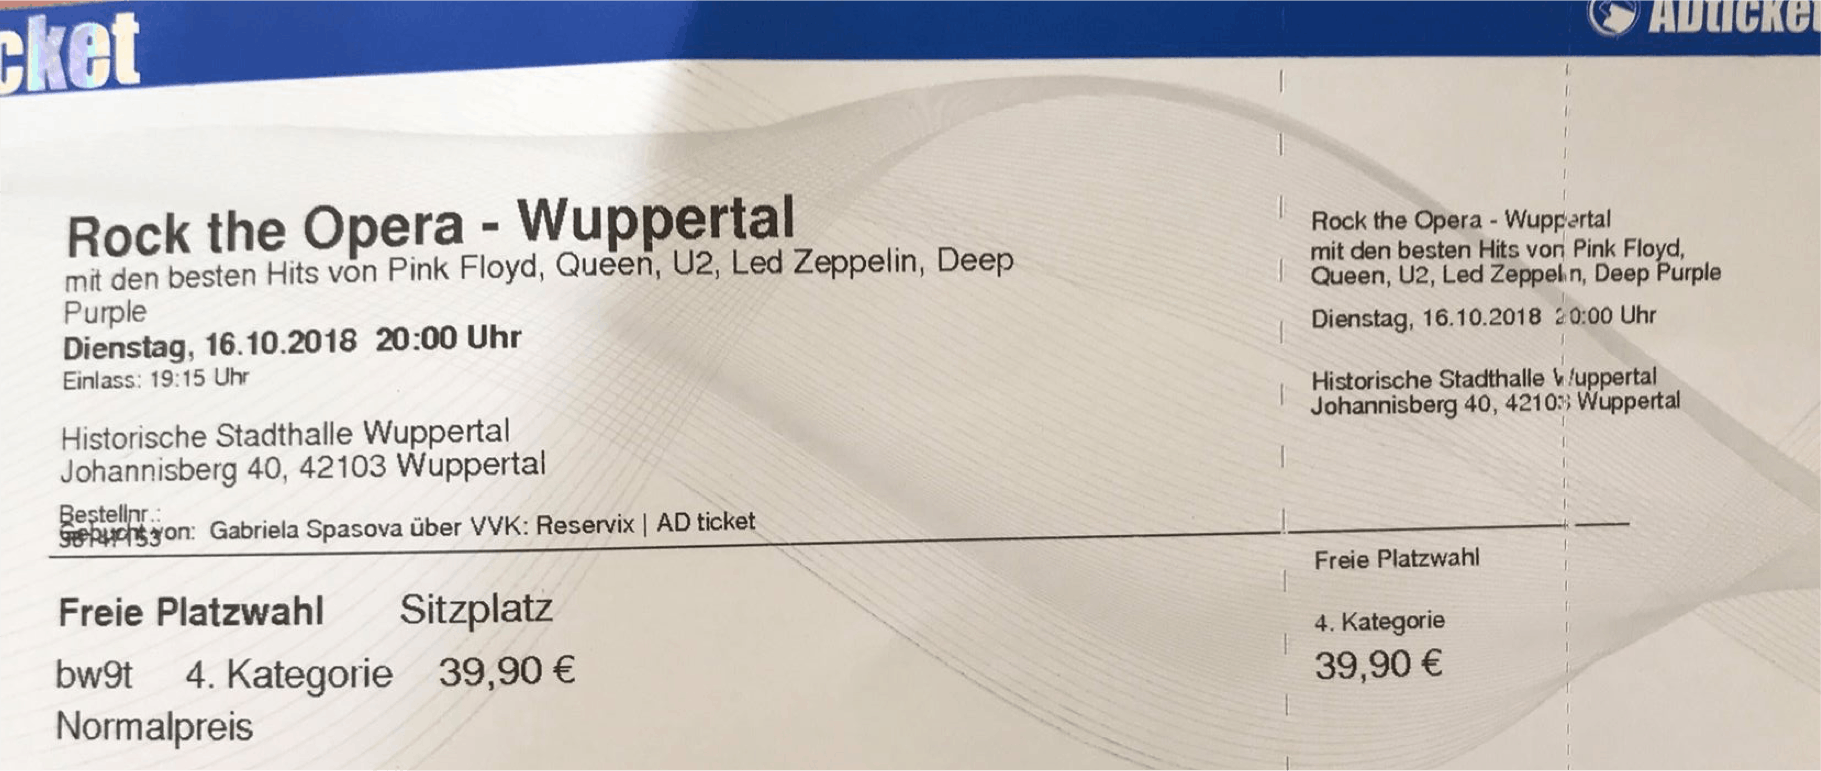 Rock the opera- Wuppertal